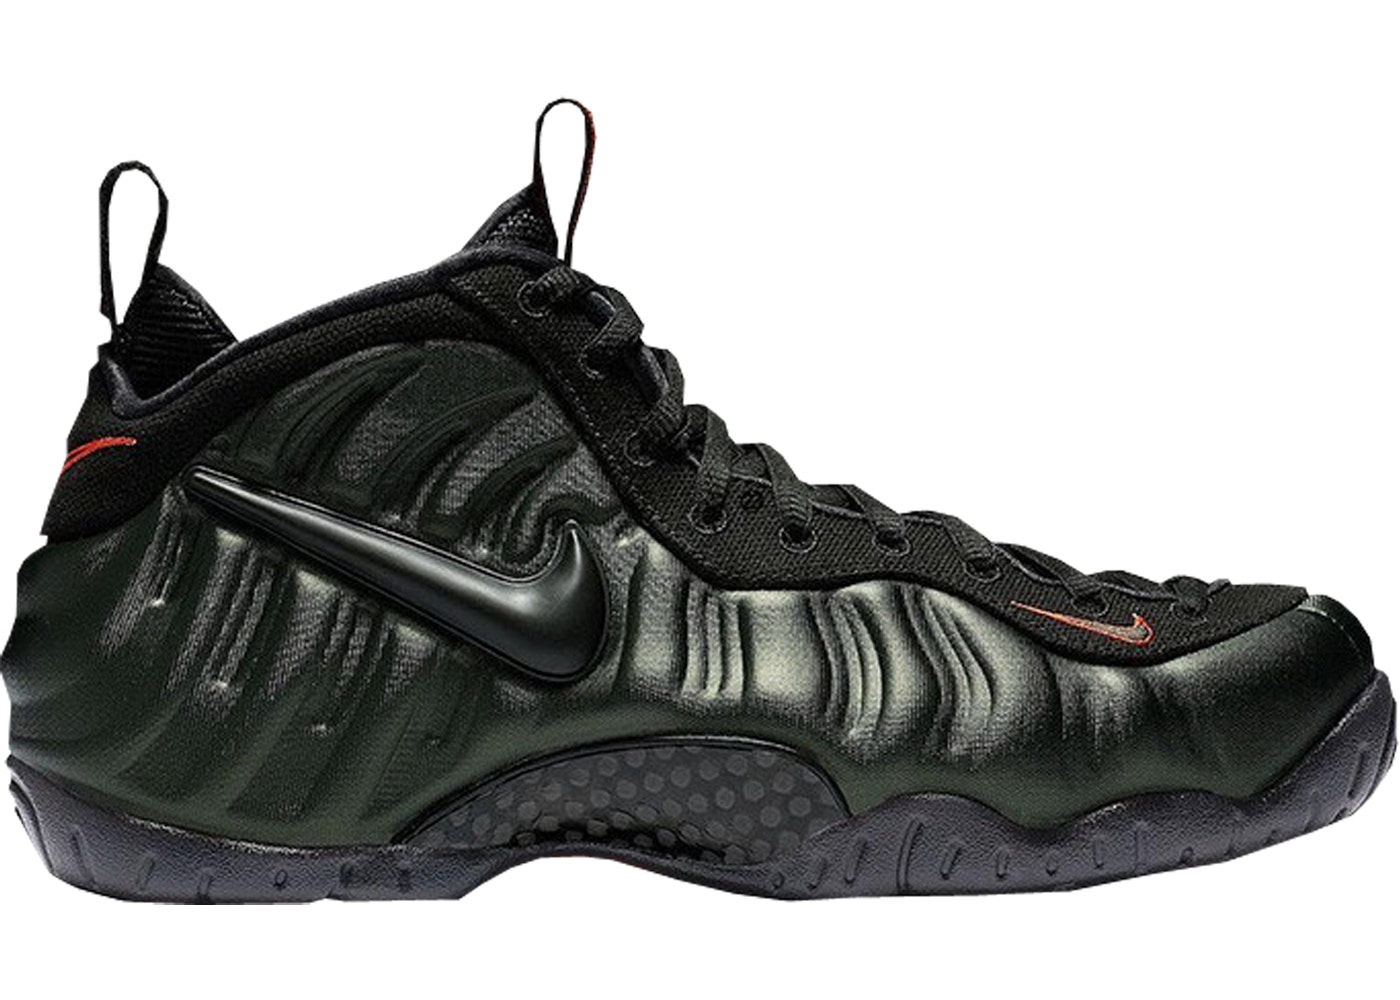 quality design 1bc1f 6d5f1 Buy Nike Foamposite Shoes   Deadstock Sneakers